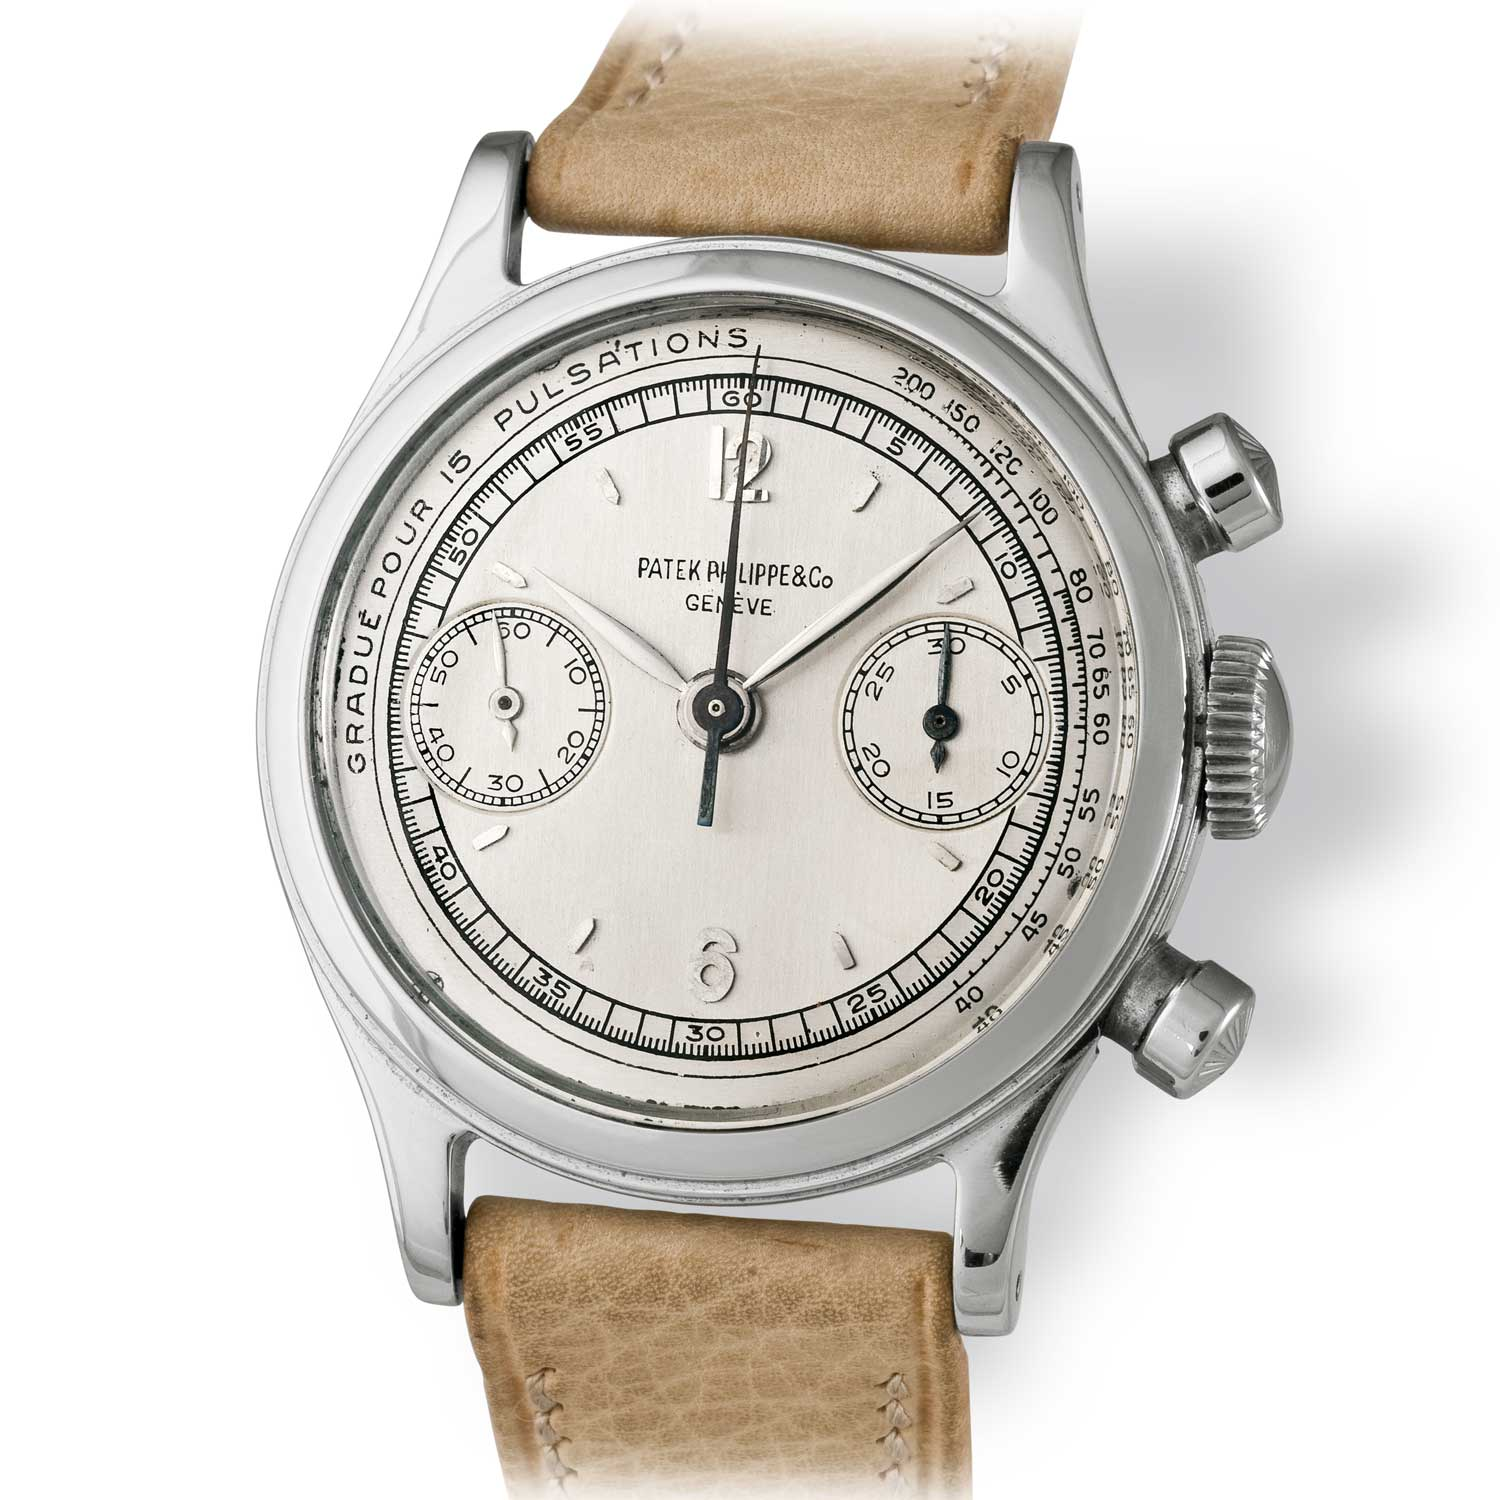 Patek Philippe ref. 1463 steel chronograph with Roman numerals (Image: John Goldberger)